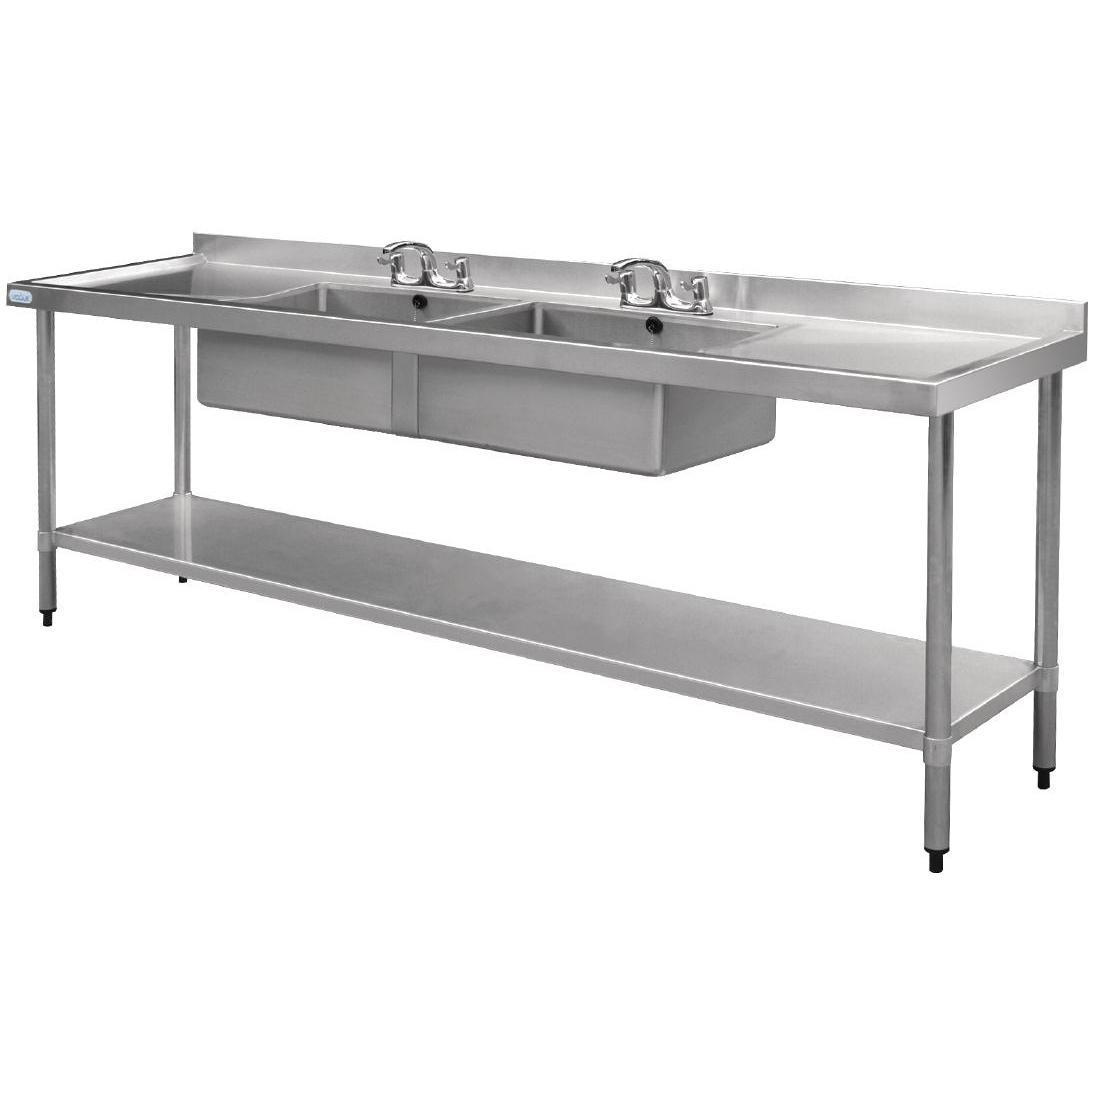 Vogue Stainless Steel Double Sink with Double Drainer 2400mm - U910